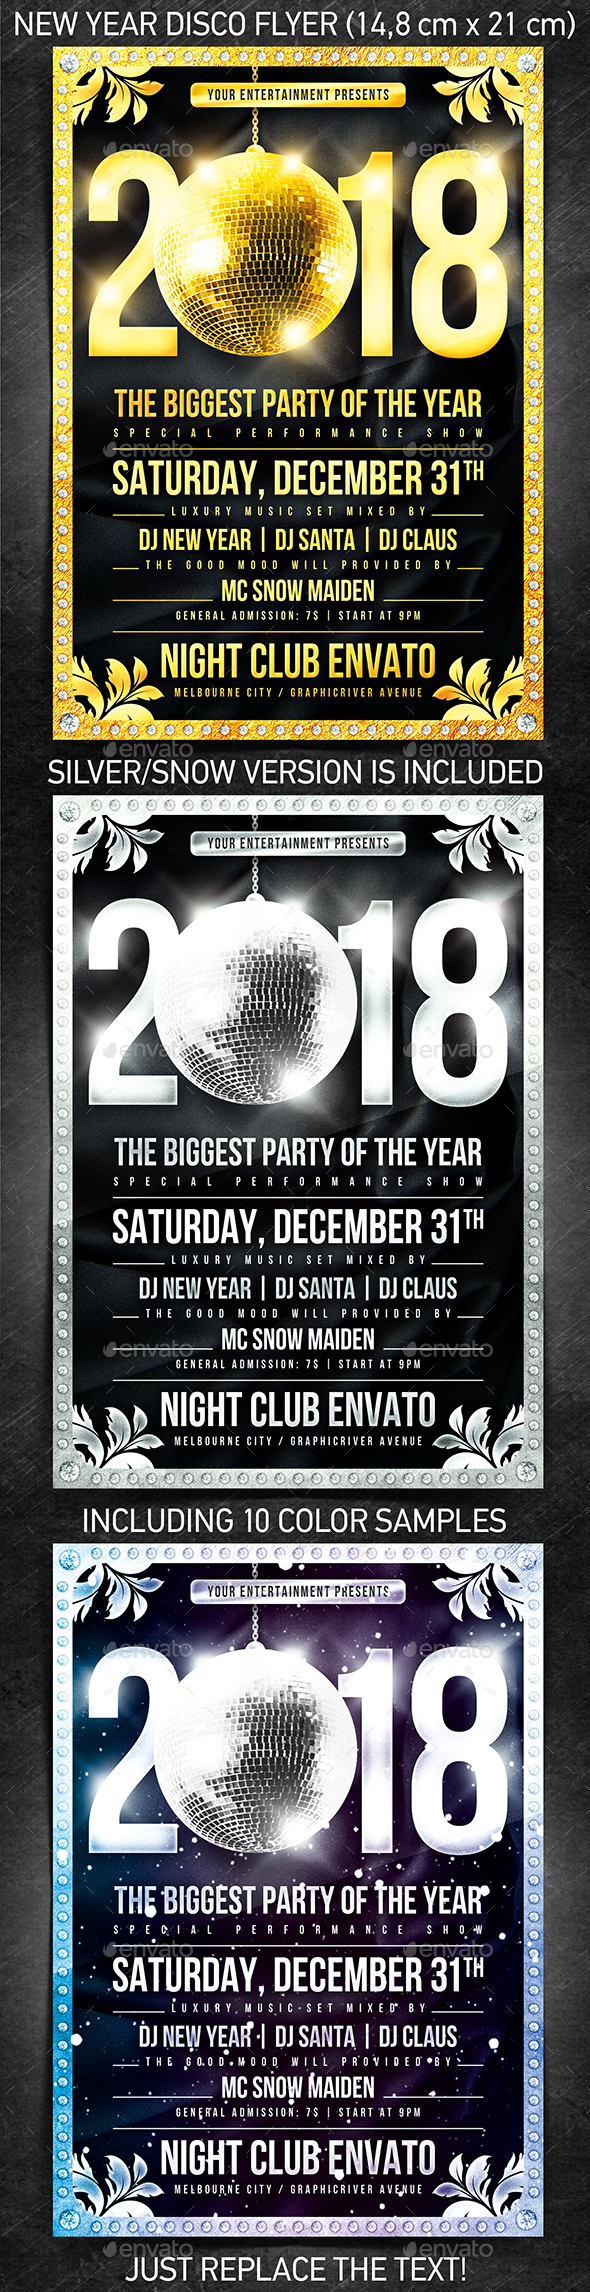 New Year Disco Flyer #1